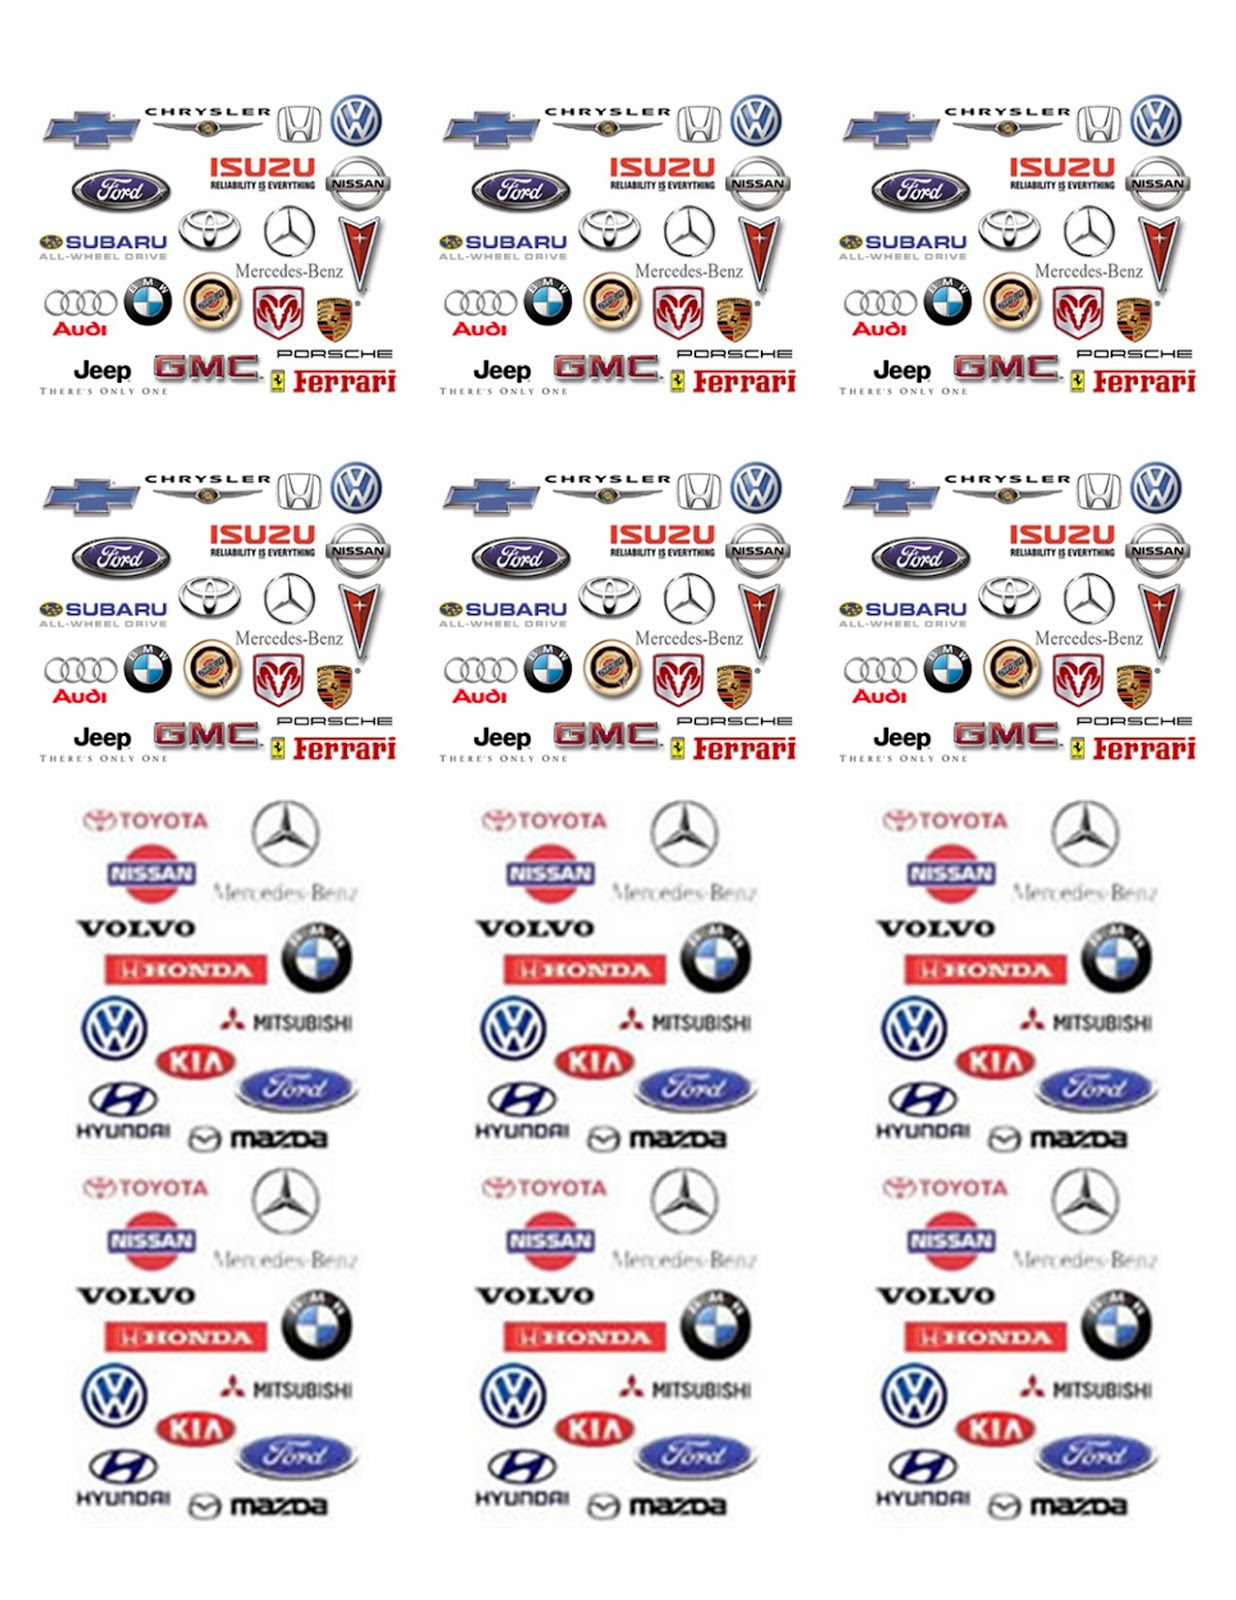 Best Car Logos: Car brands